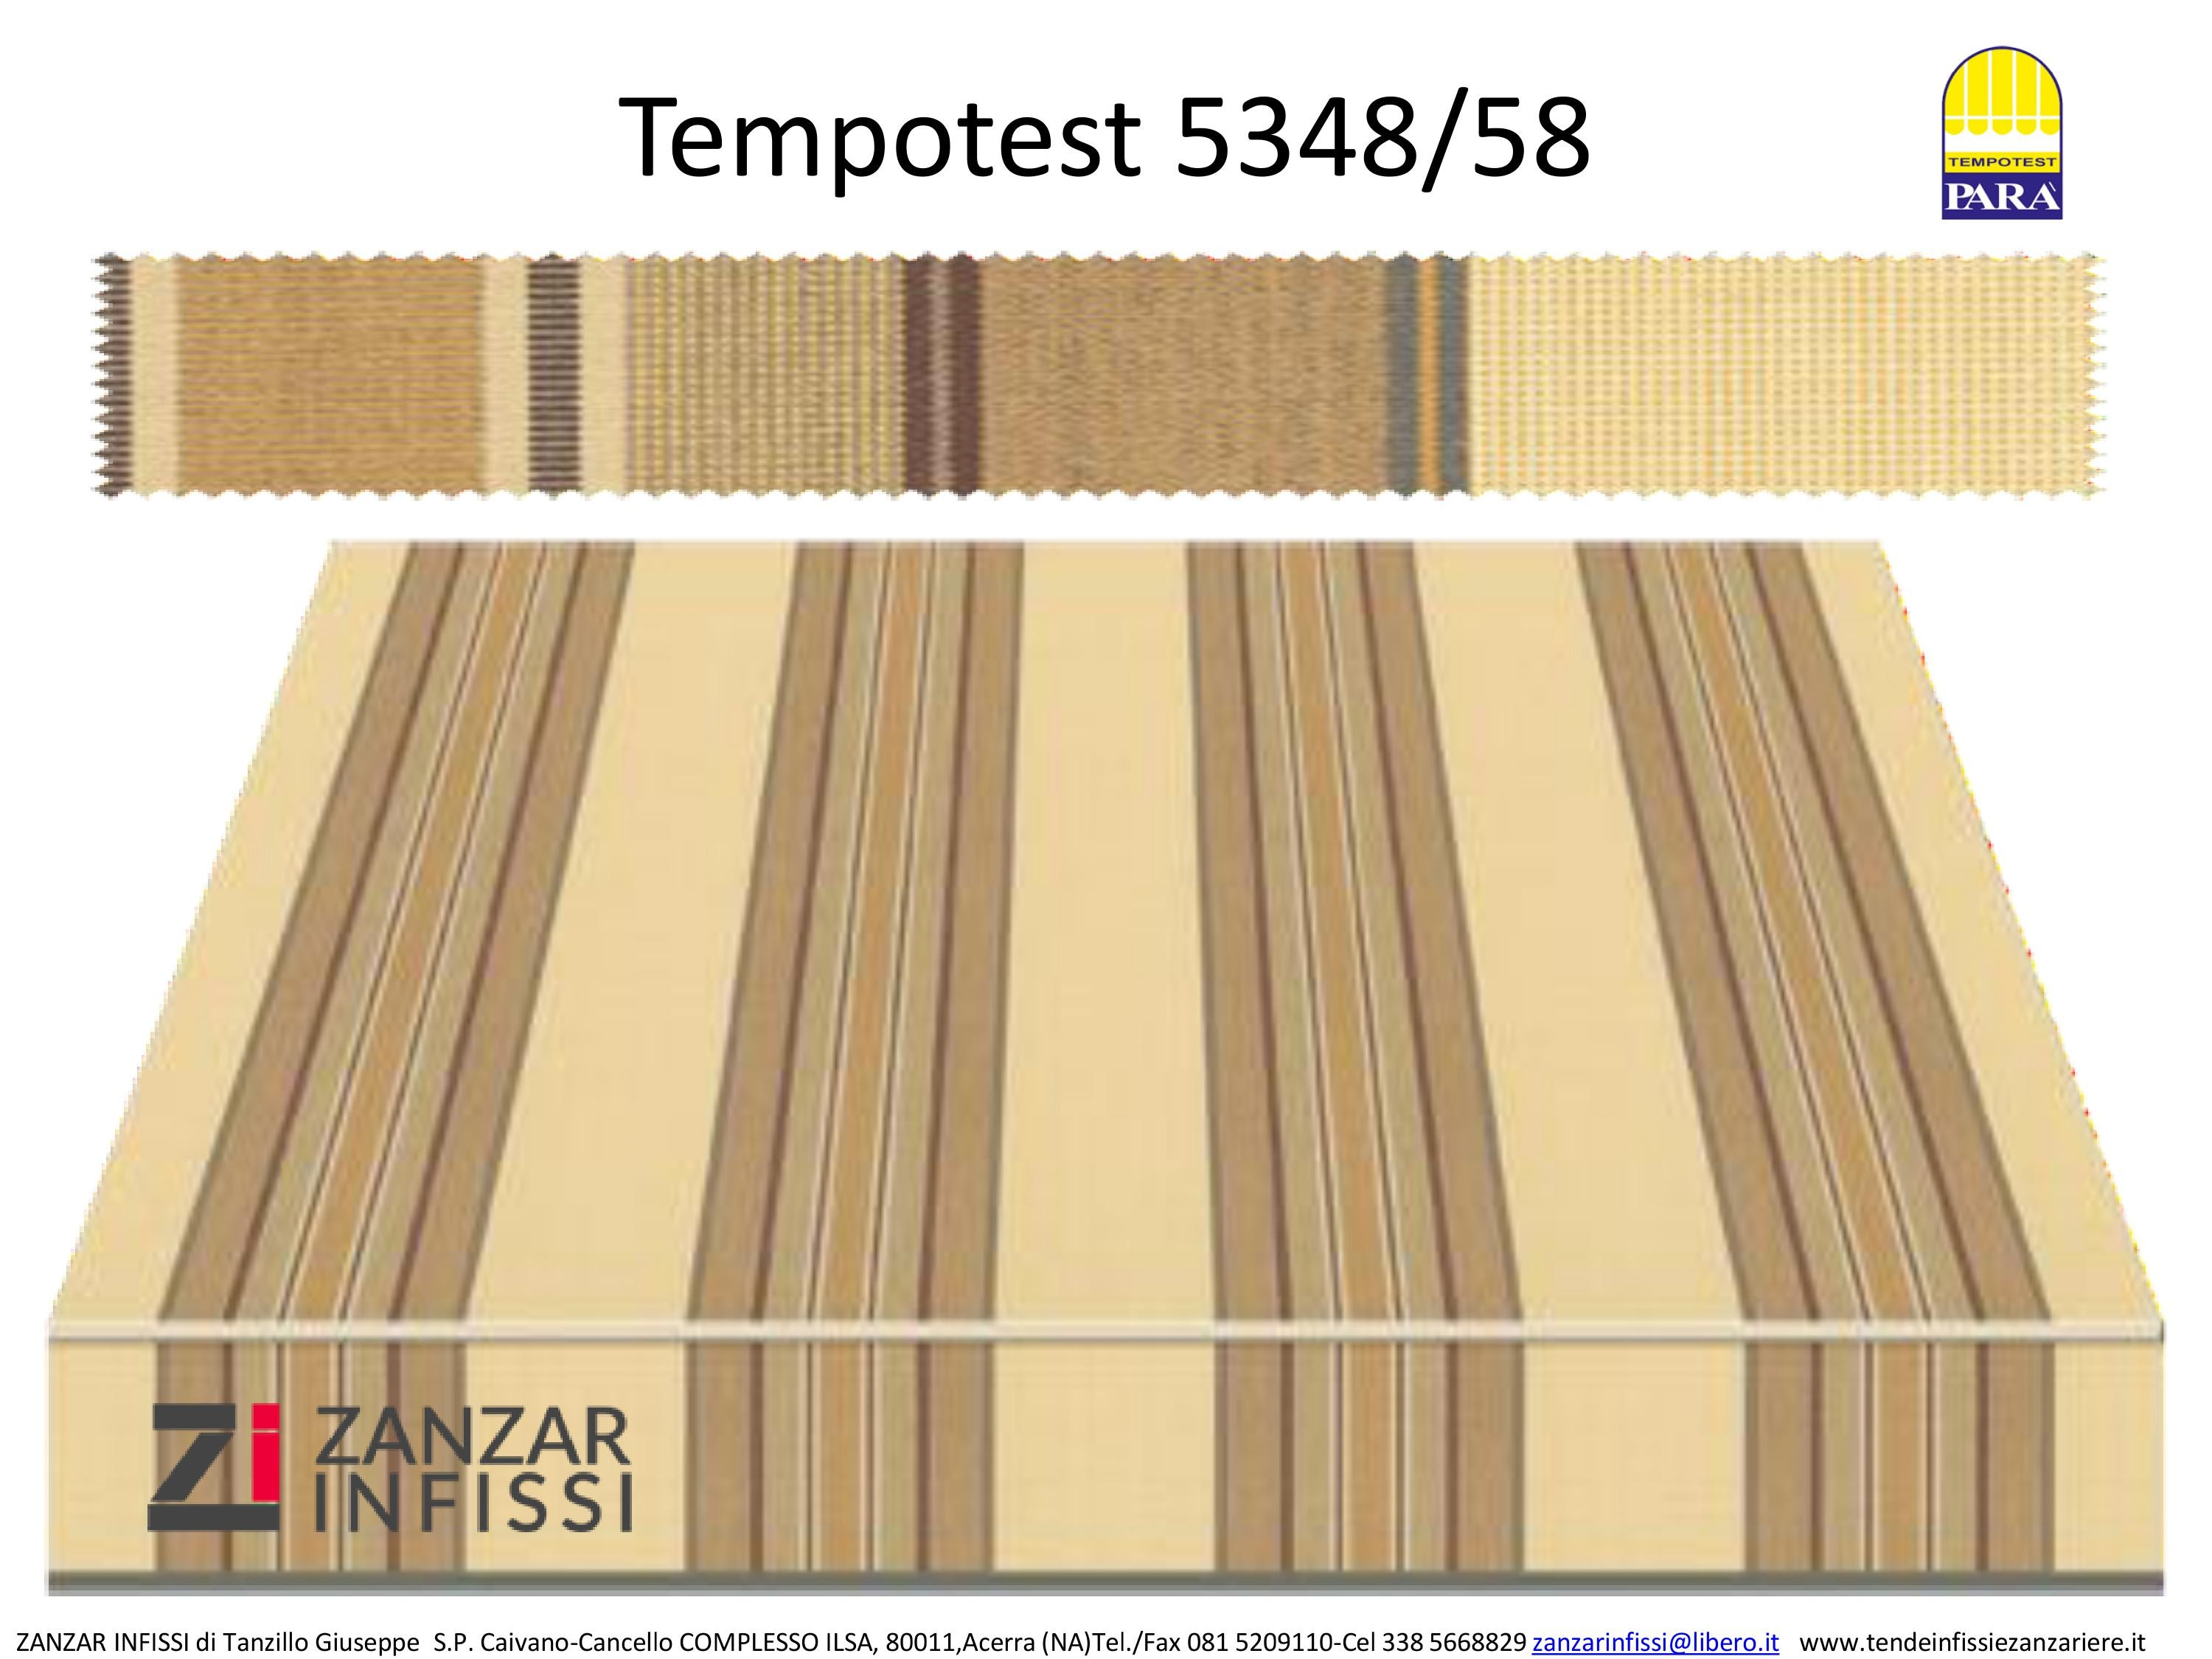 Tempotest 5348/58